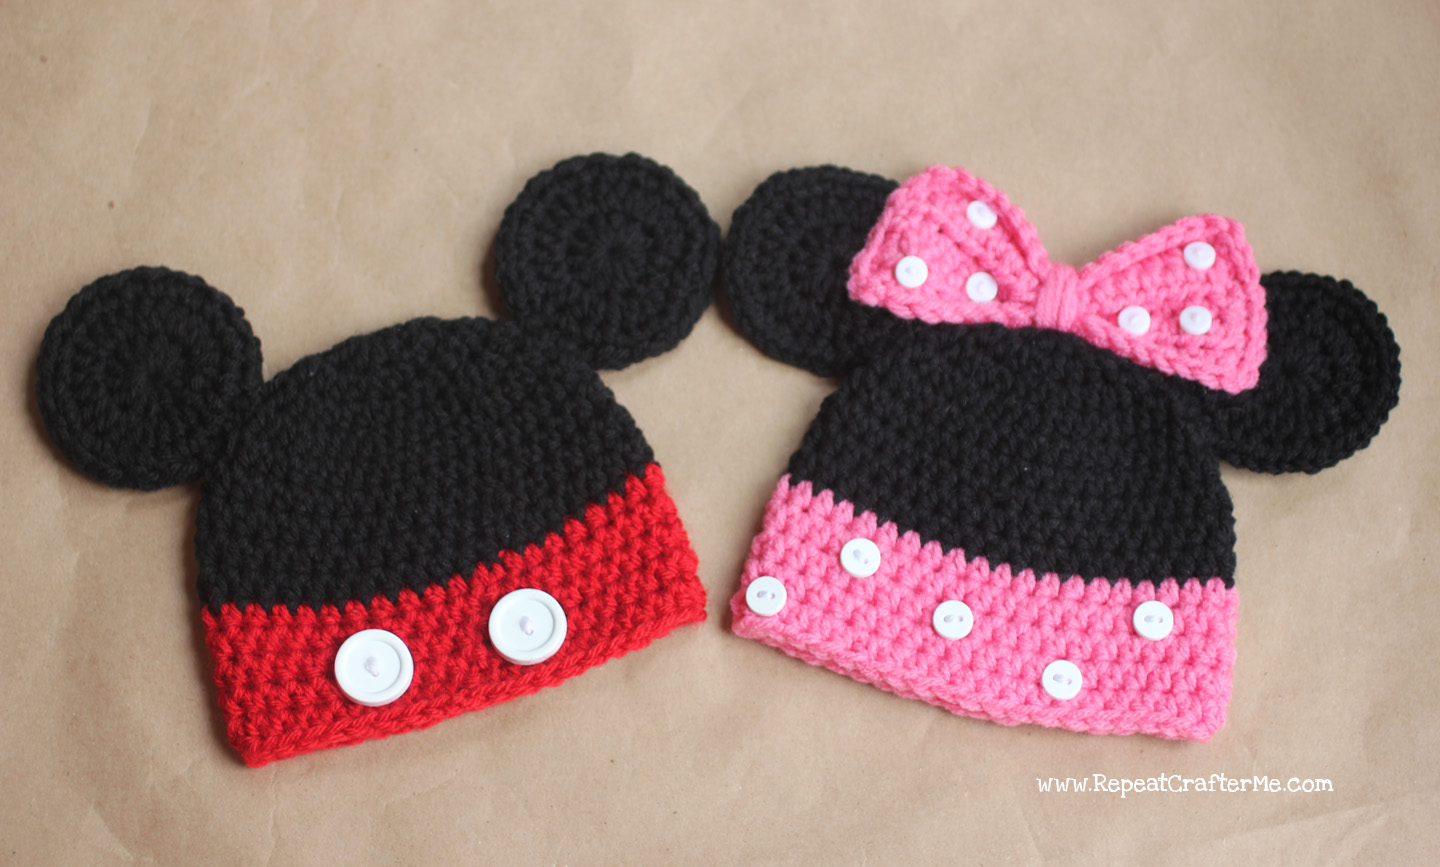 year olds new favorite show and the inspiration for these crochet hats ...